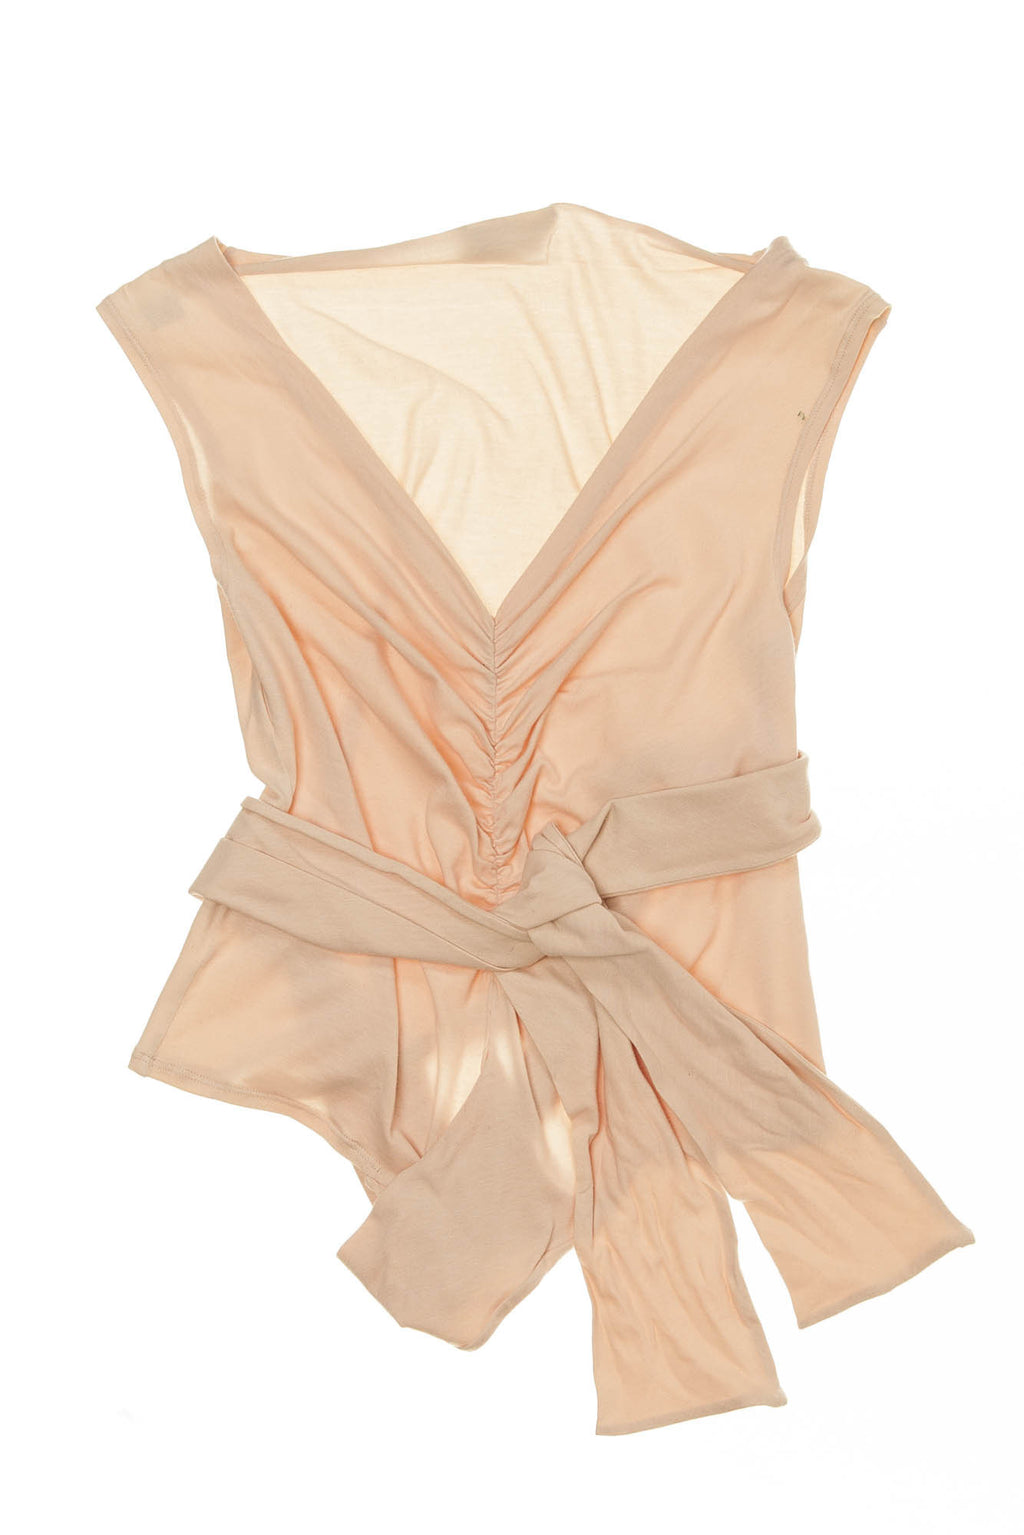 Alberta Ferretti - Pink Sleeveless Tie Top - IT 40